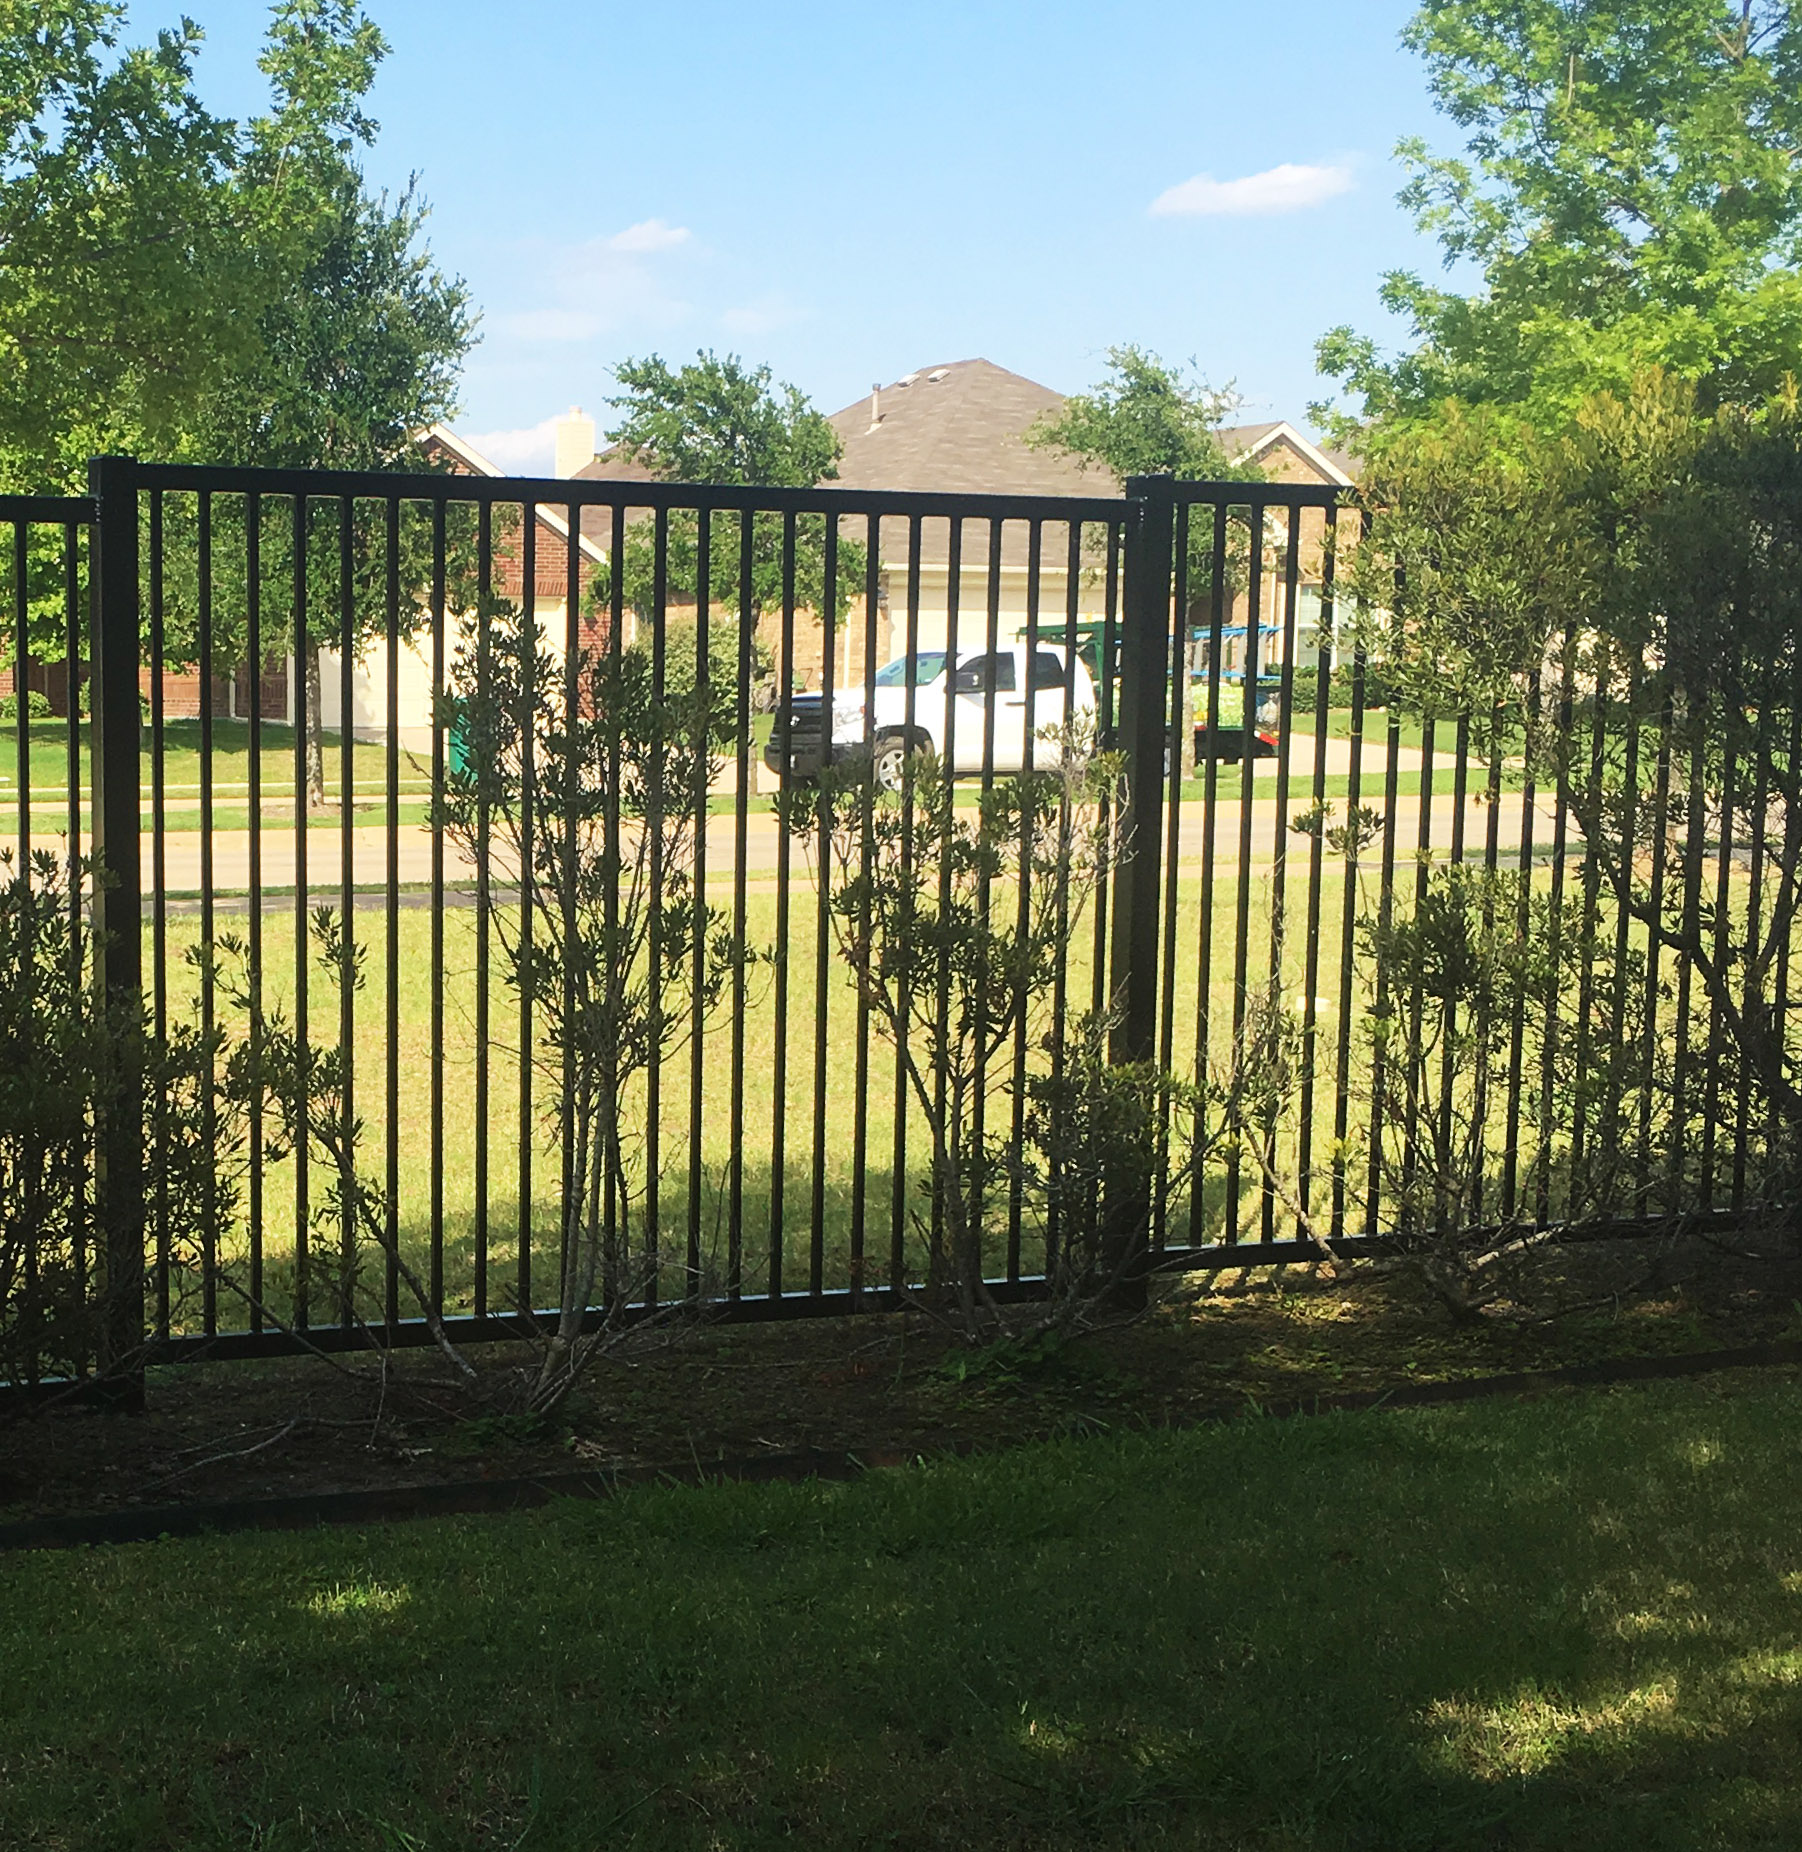 allen fence panies a better fence pany wood metal fences